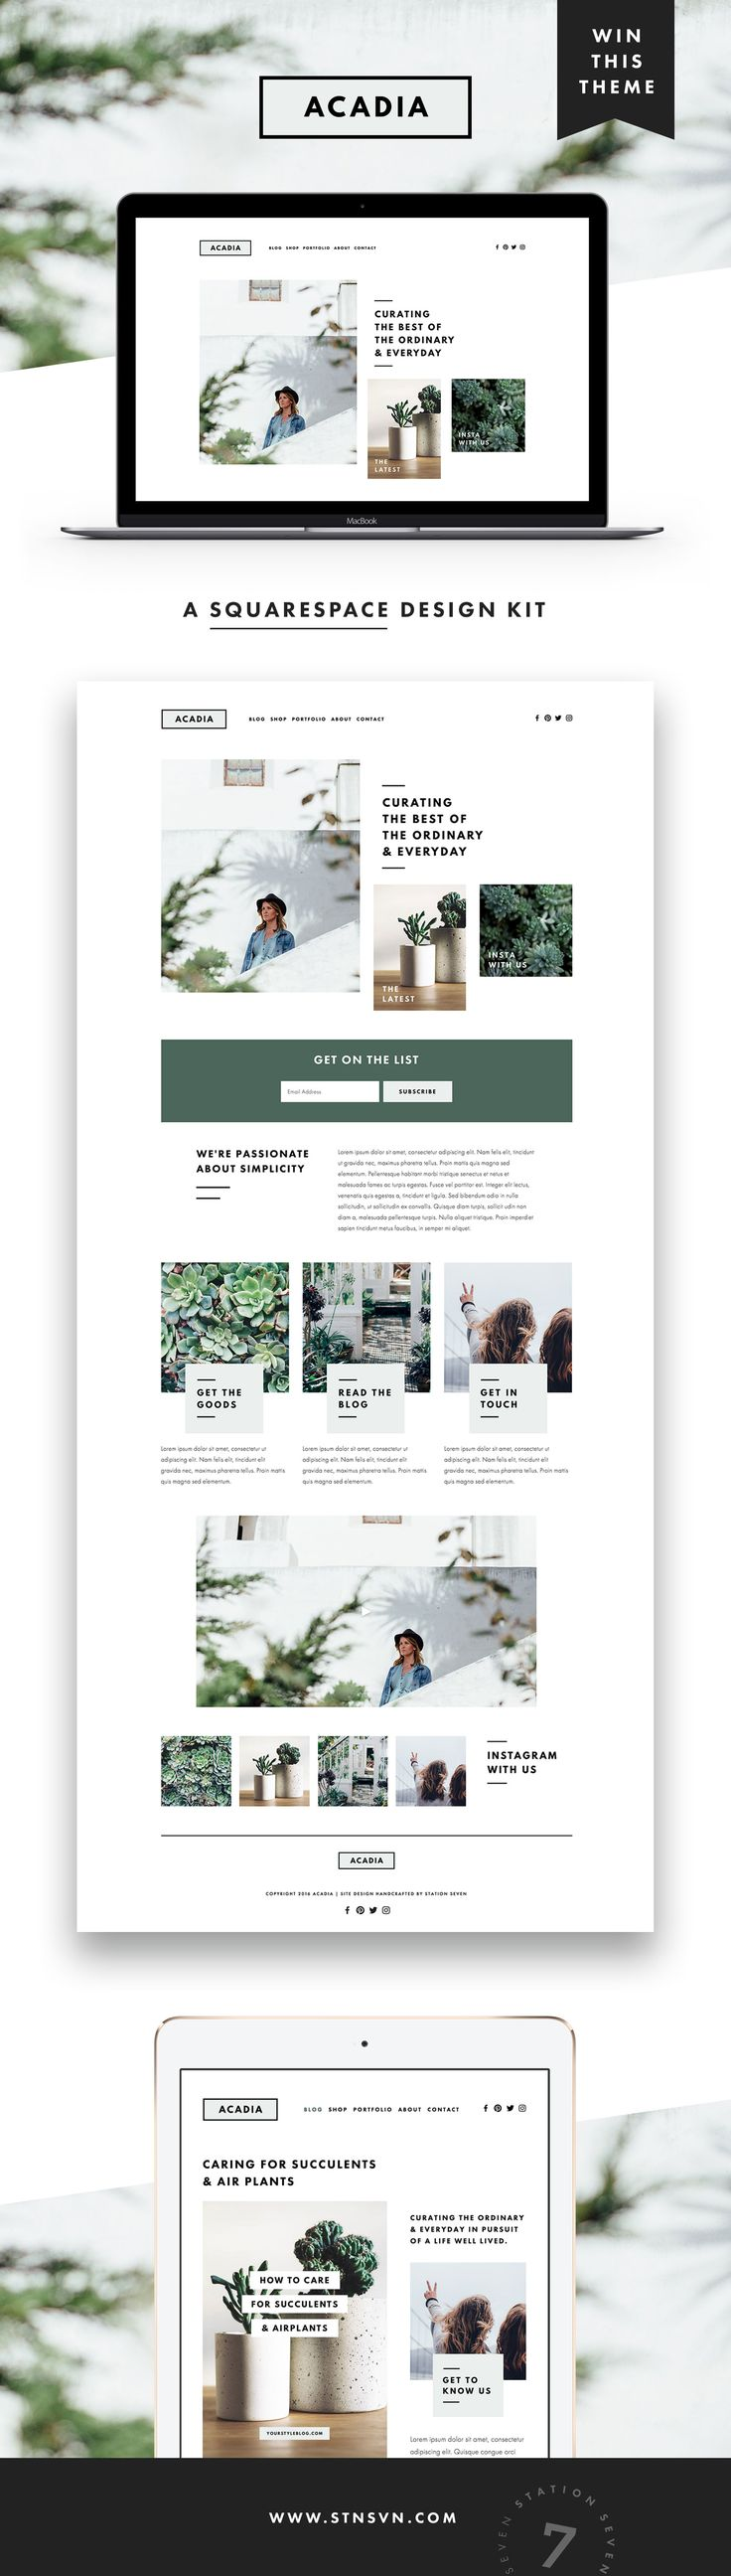 GIVEAWAY! Introducing our latest web design for Squarespace, Acadia! If you've been thinking about sprucing up your blog or site design, there's no time like the present. Simply follow us @stnsvn and repin this pin for a chance to win our new Acadia Squar